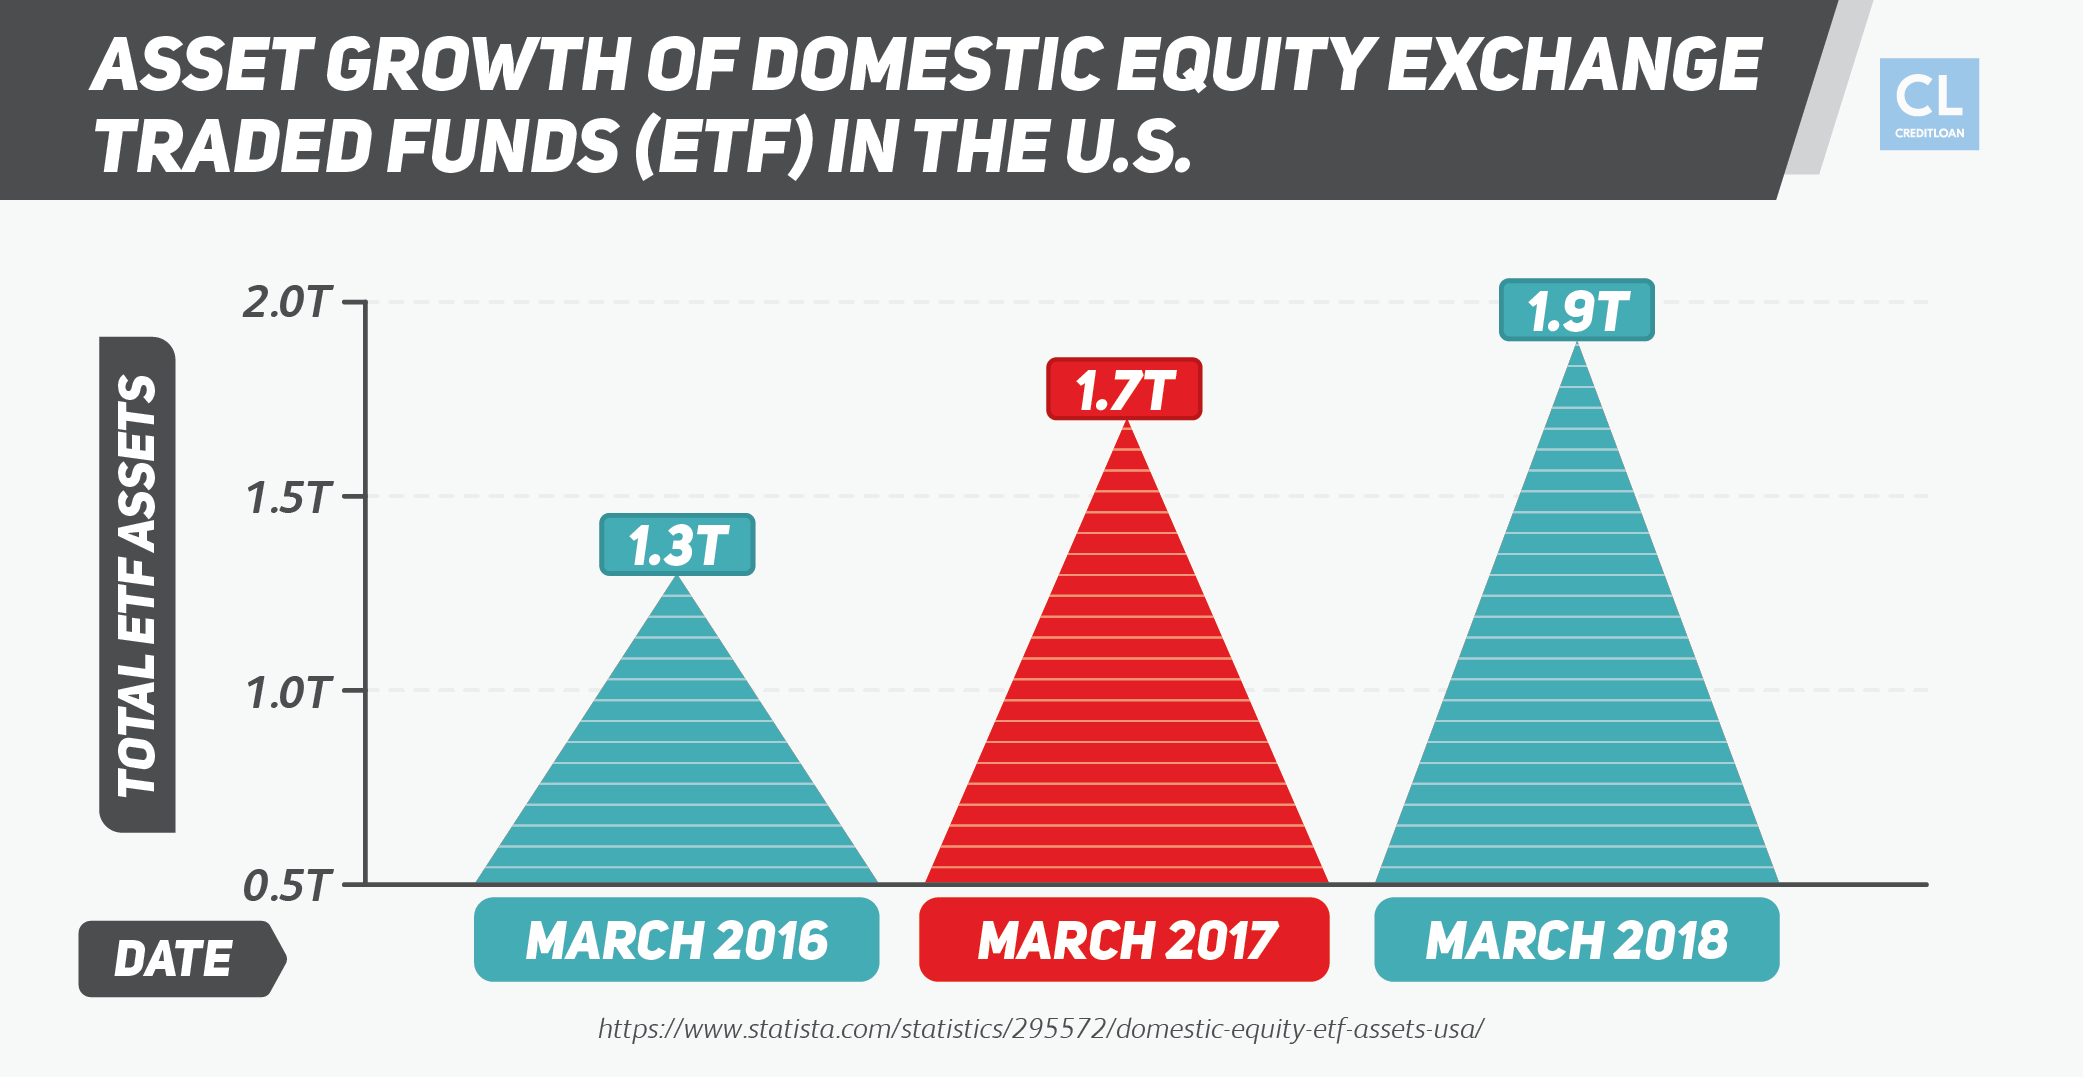 Asset Growth of Domestic Equity Exchange-Traded Funds (ETF) in the U.S.